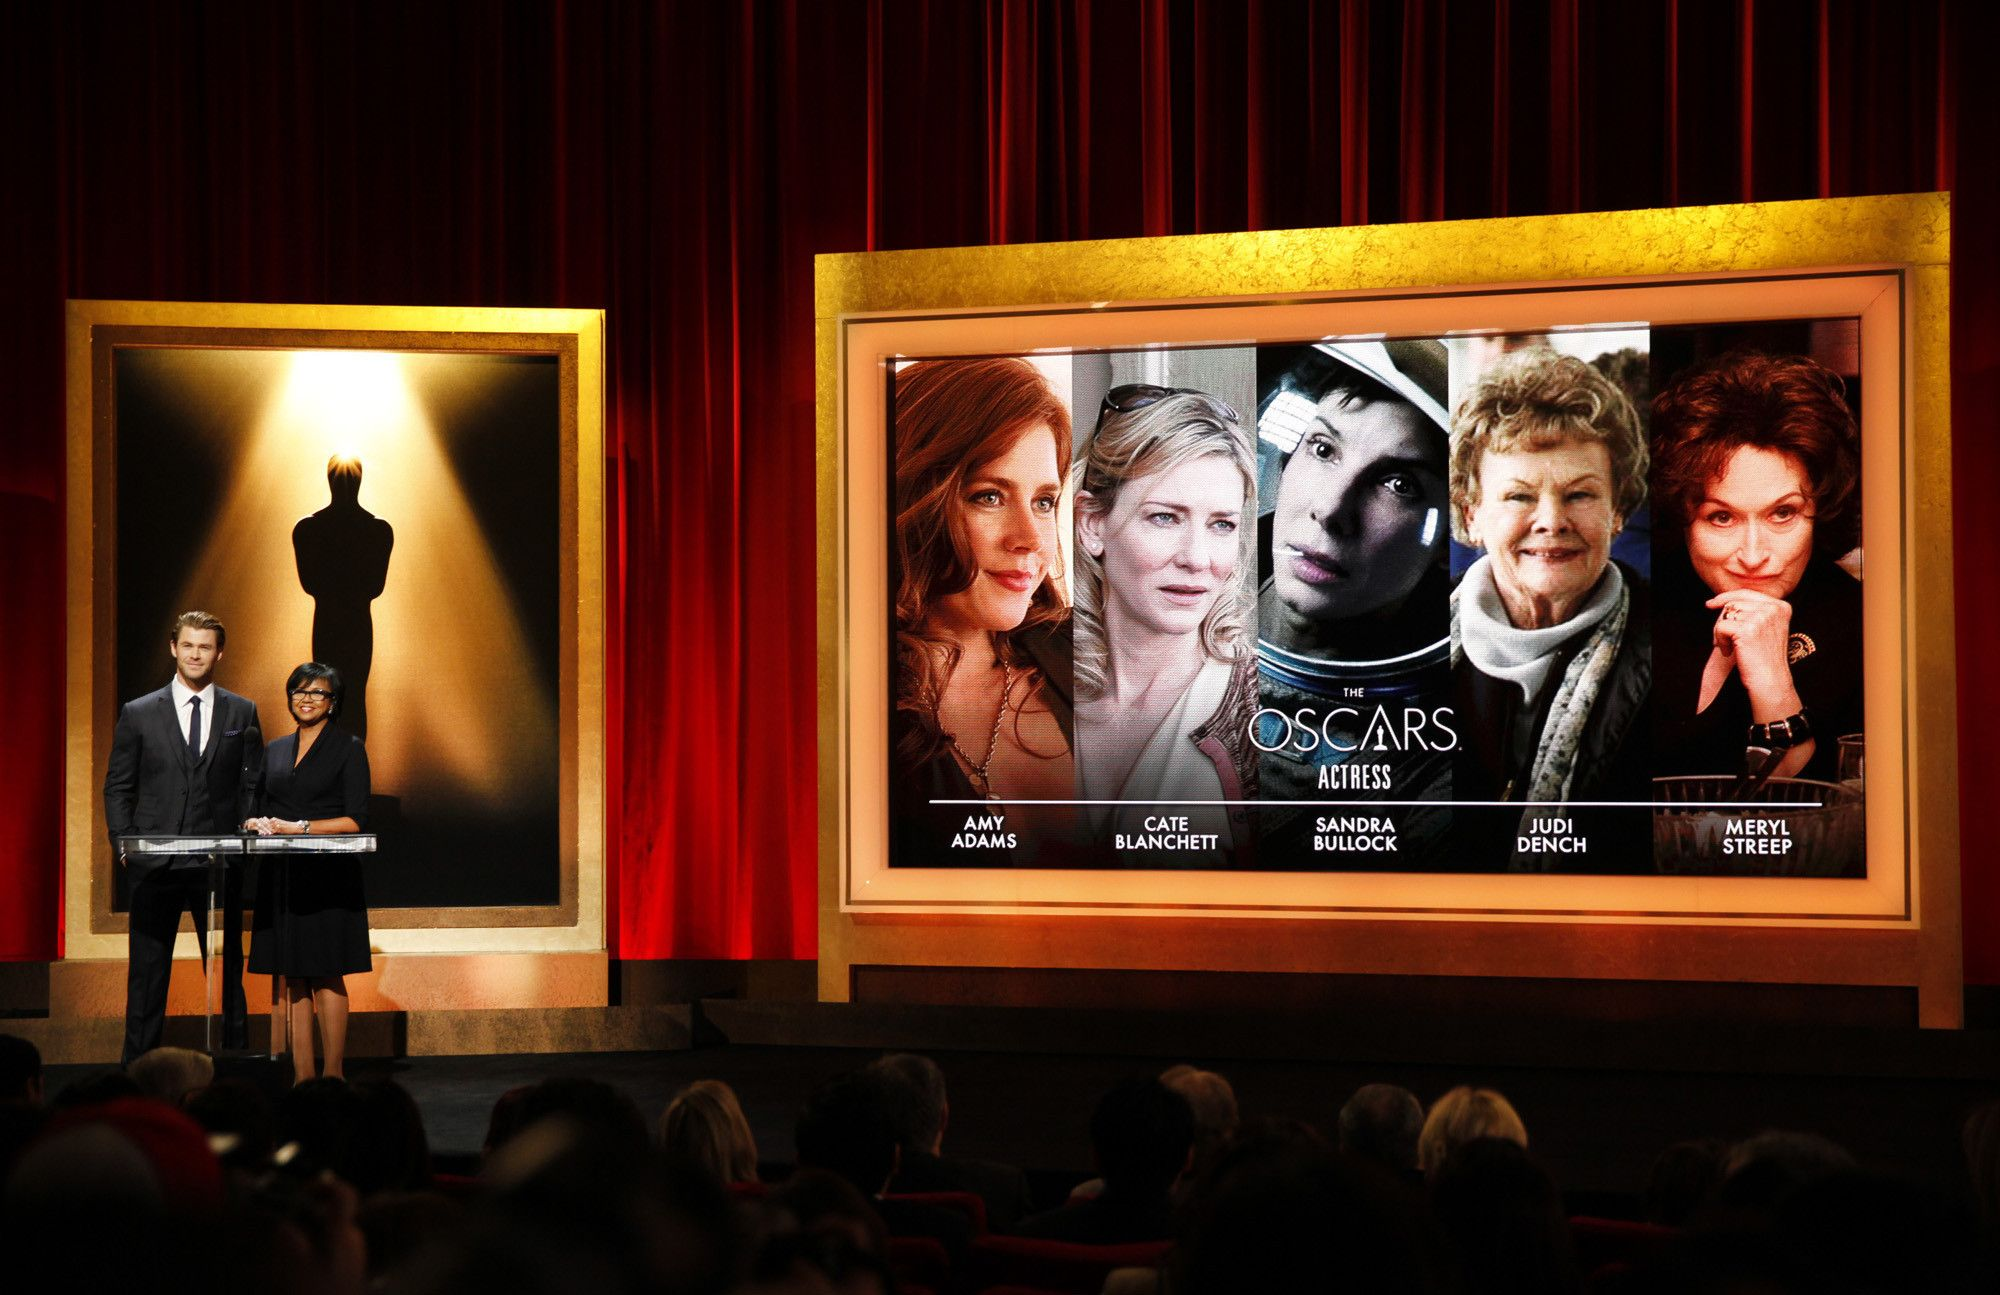 Oscars 2015: The full list of nominees | Best picture ...